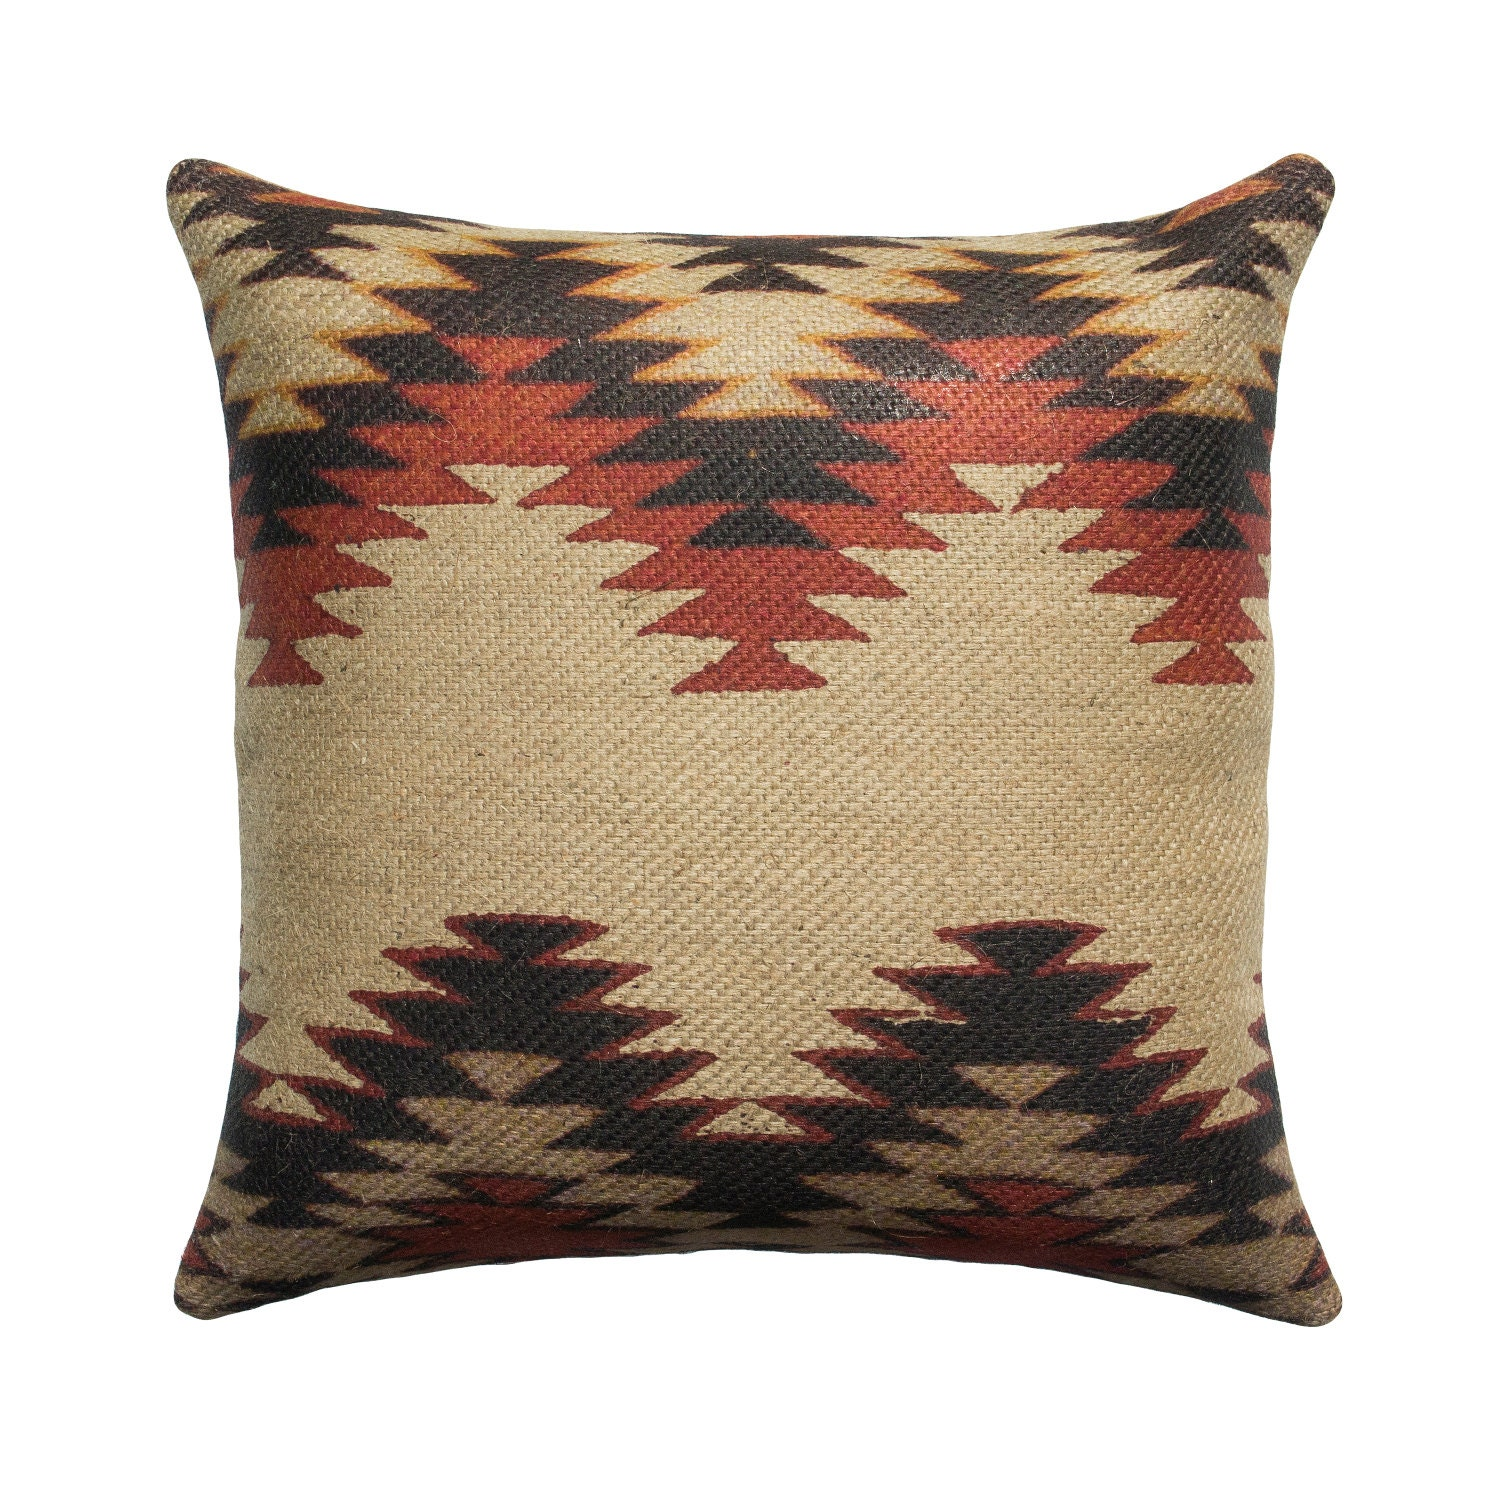 Black and Red Chevron Pillow Cover Aztec by TheWatsonShop on Etsy